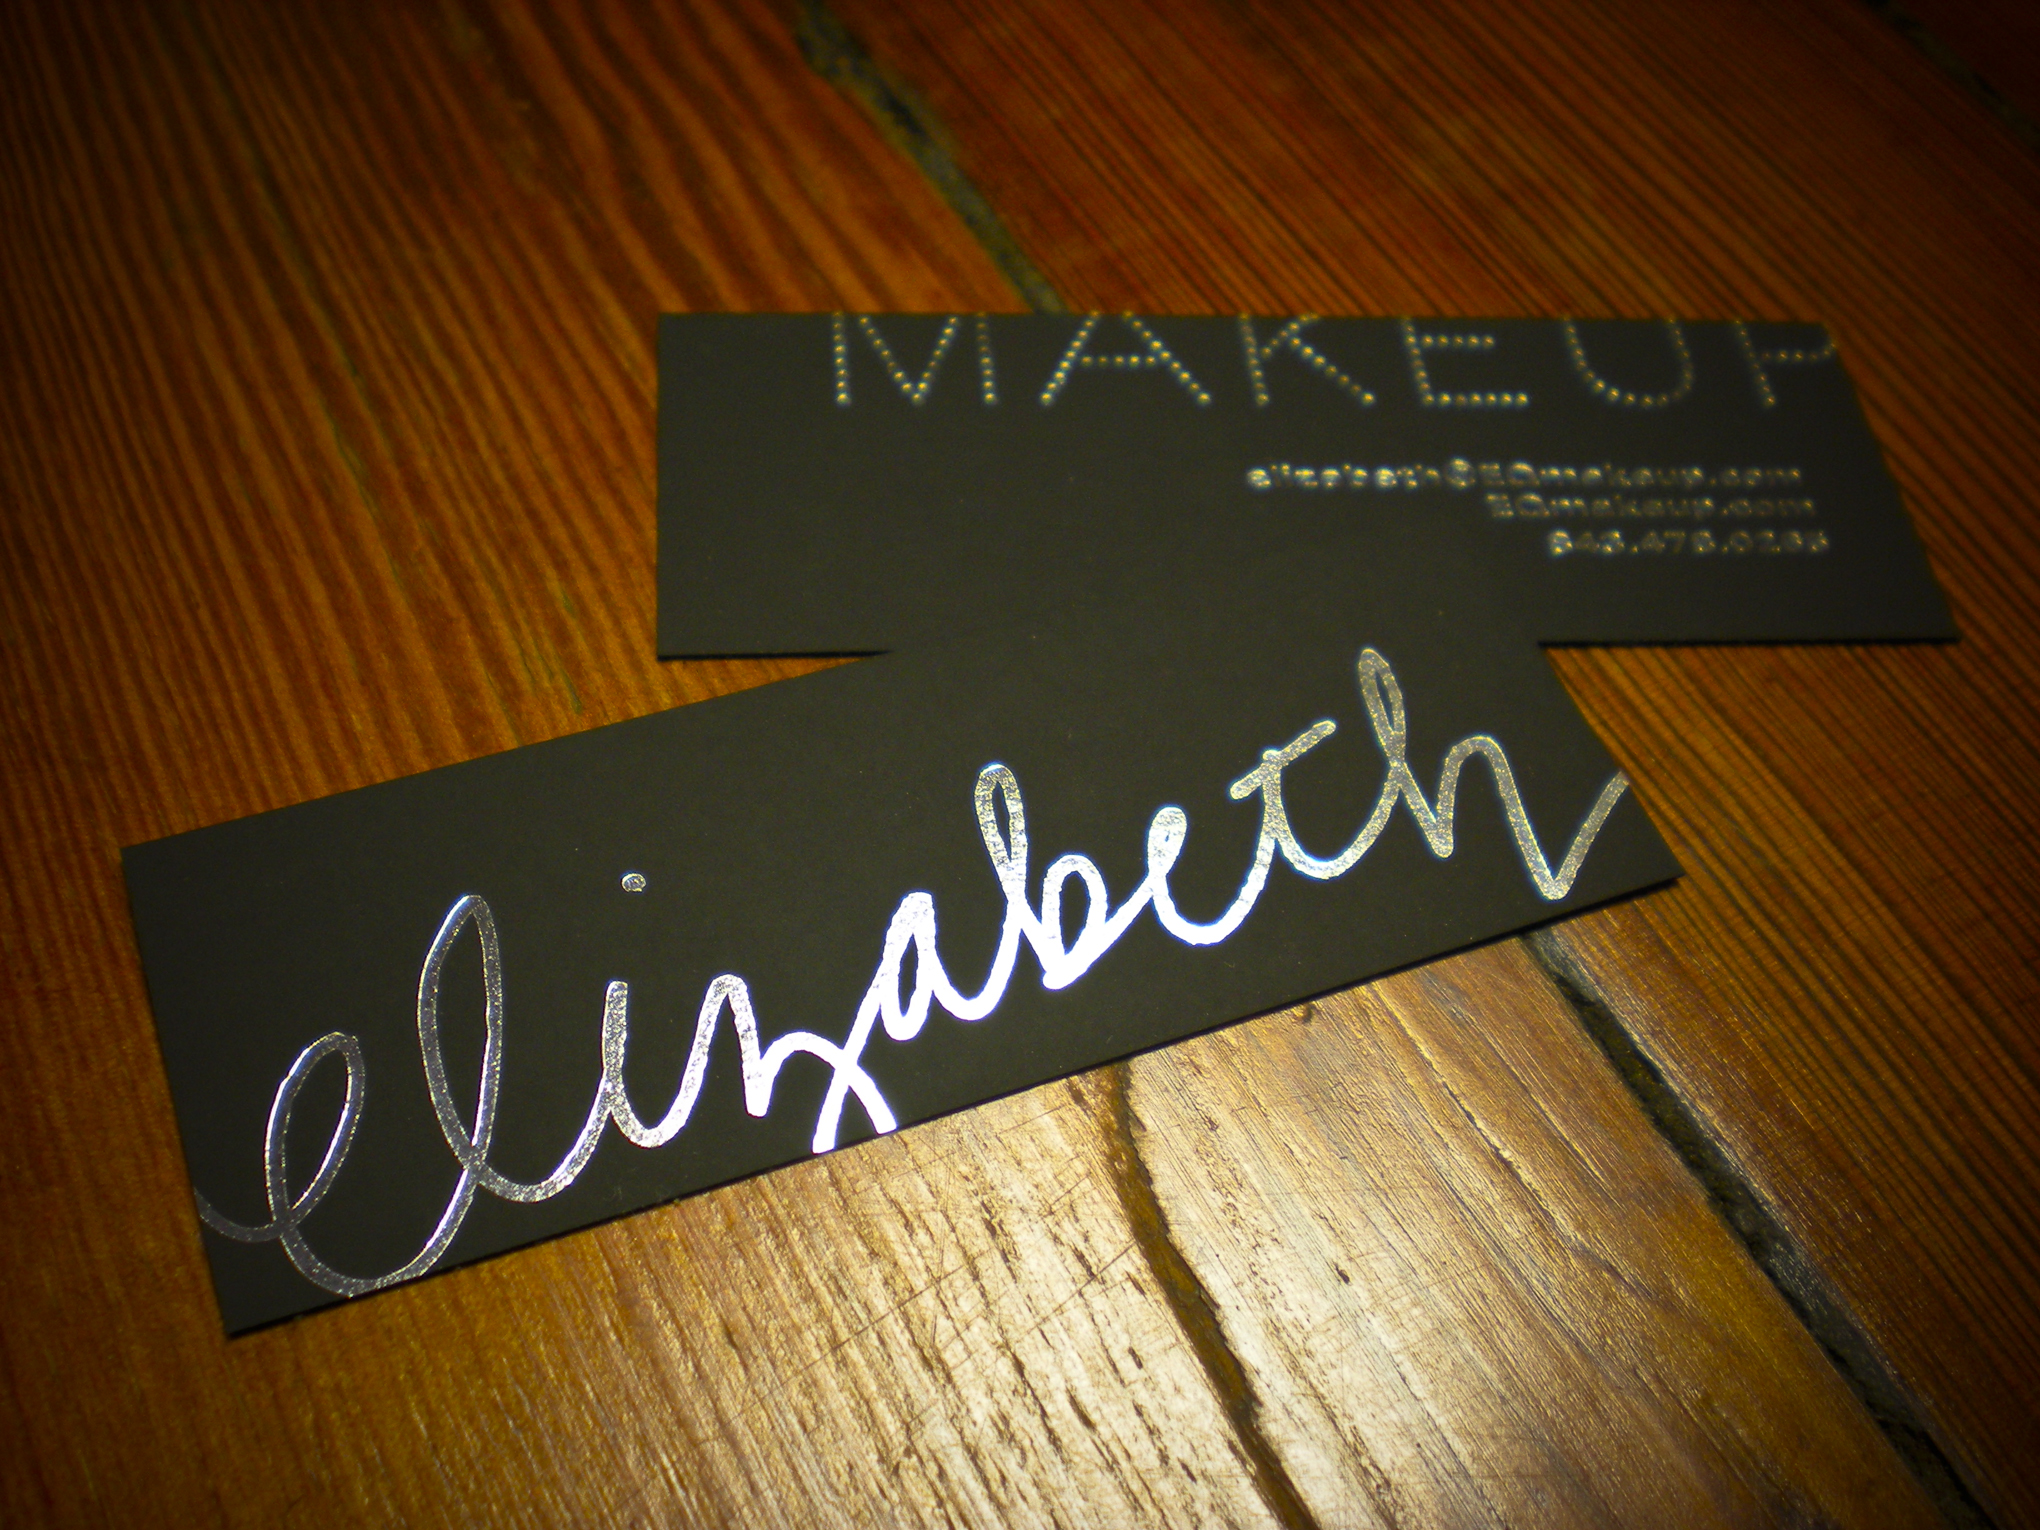 Makeup artist quotes for business cards www for Makeup artist quotes for business cards